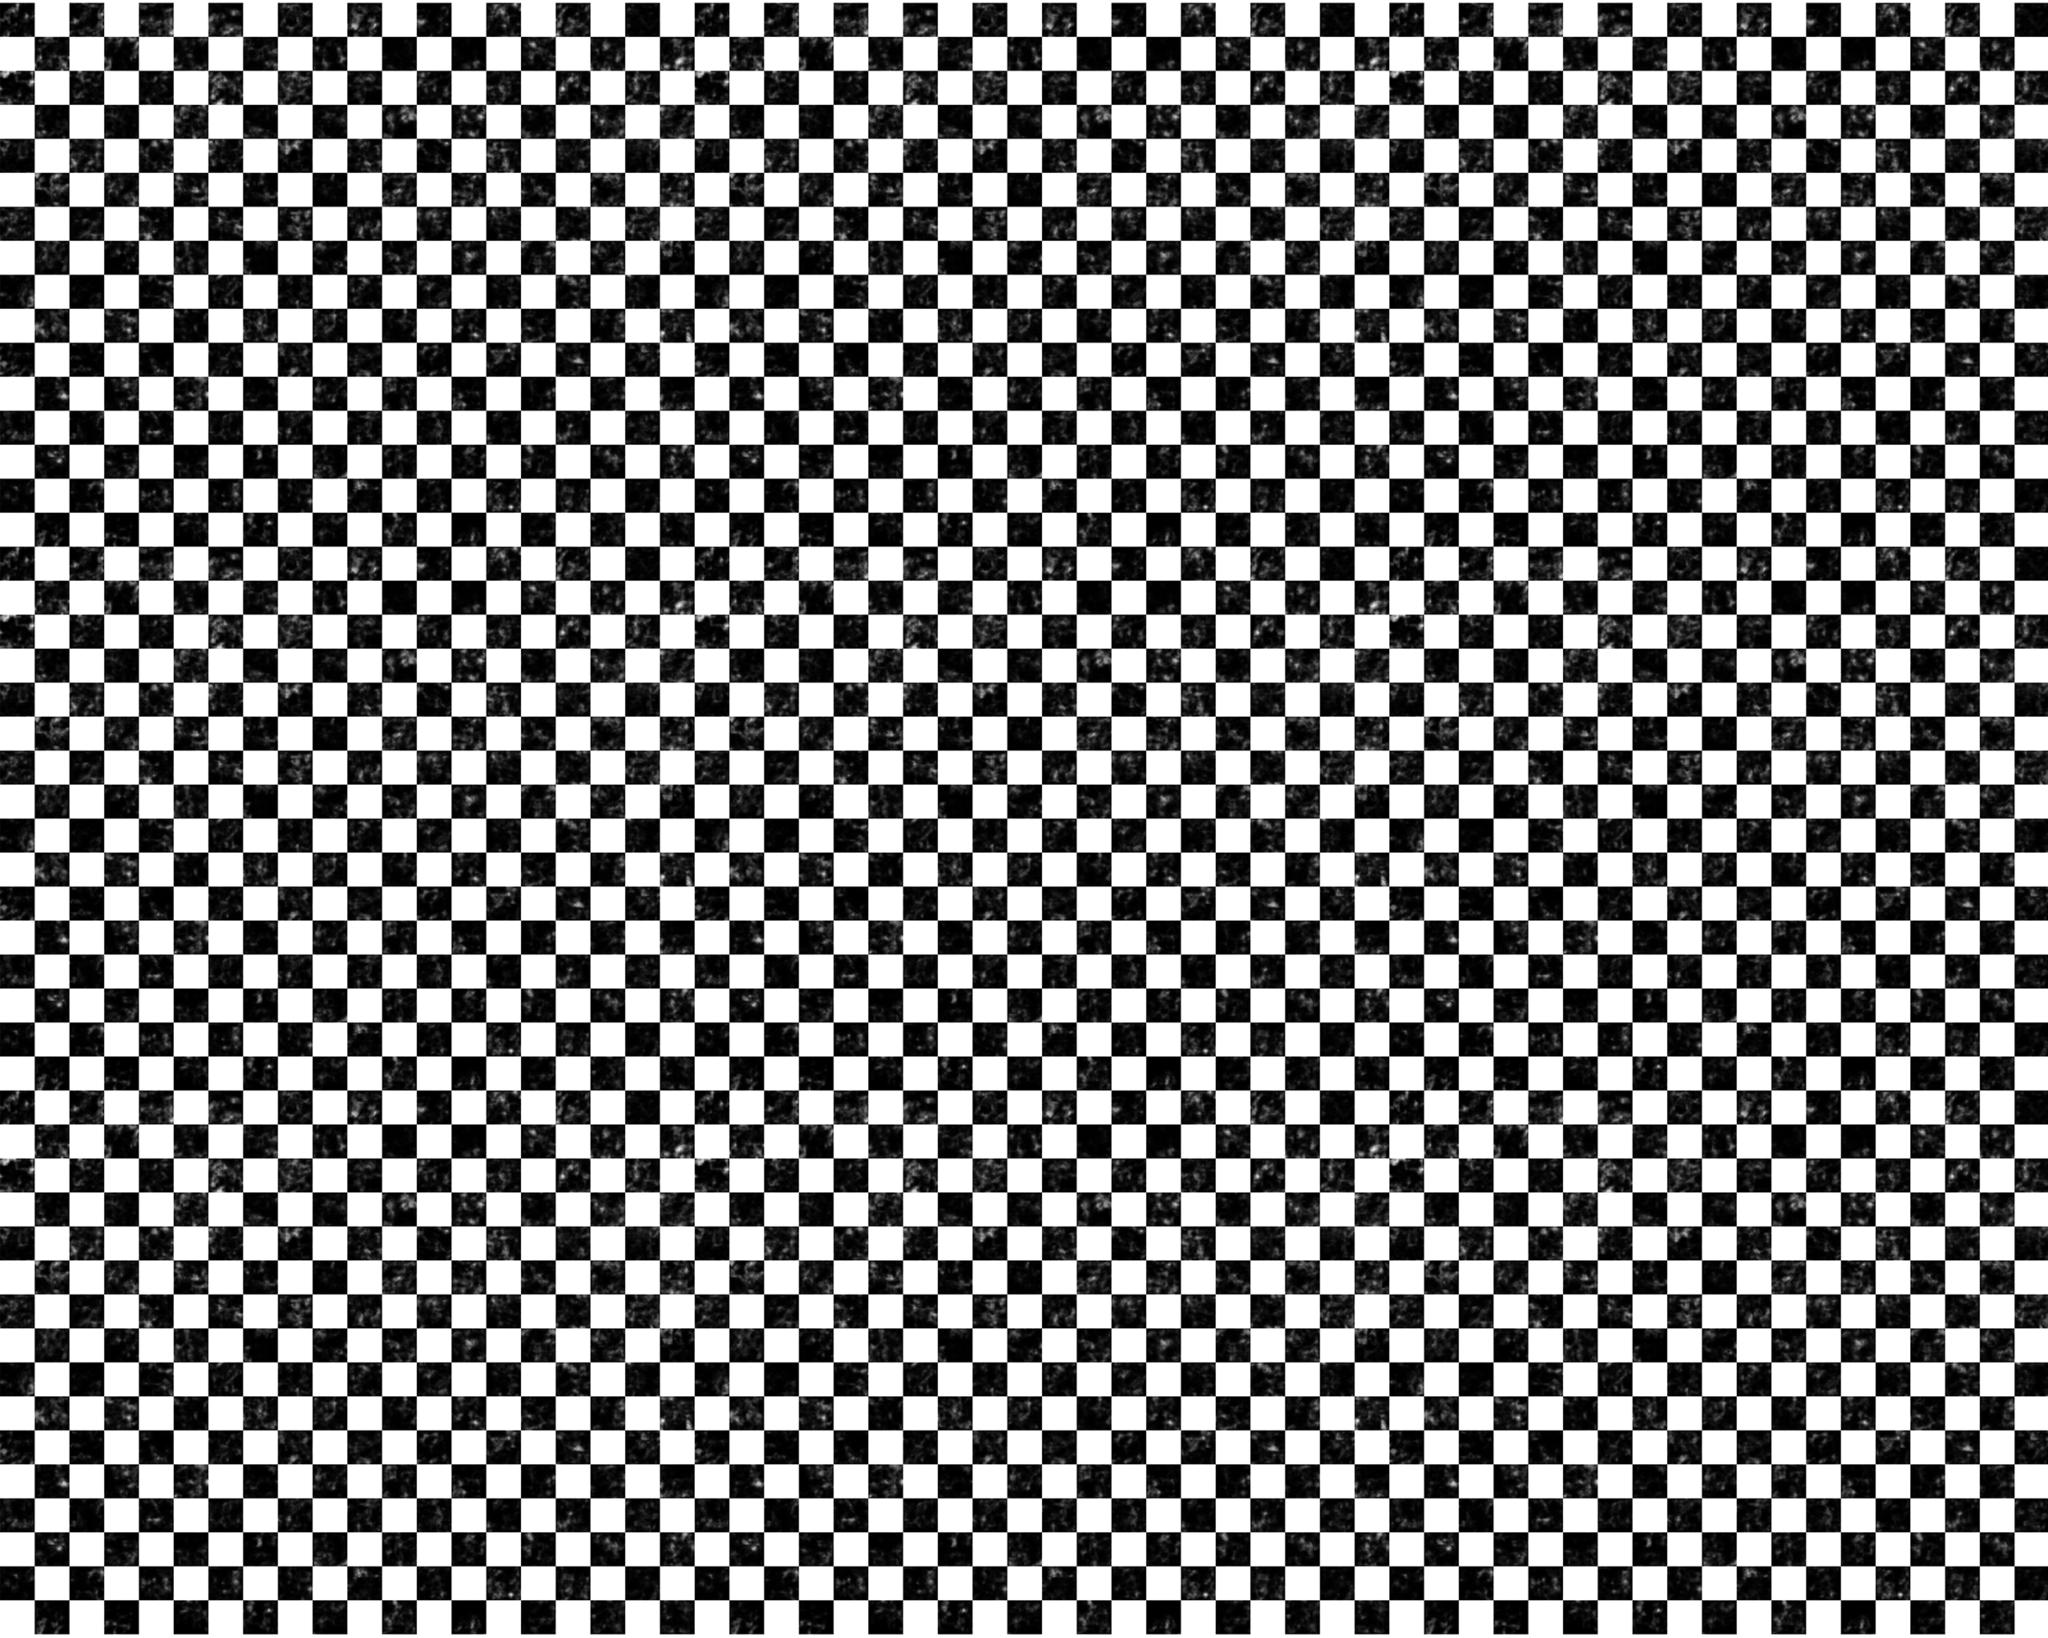 2048x1638 Black Checkerboard Architectural Elements Scenery Sheet Scenery